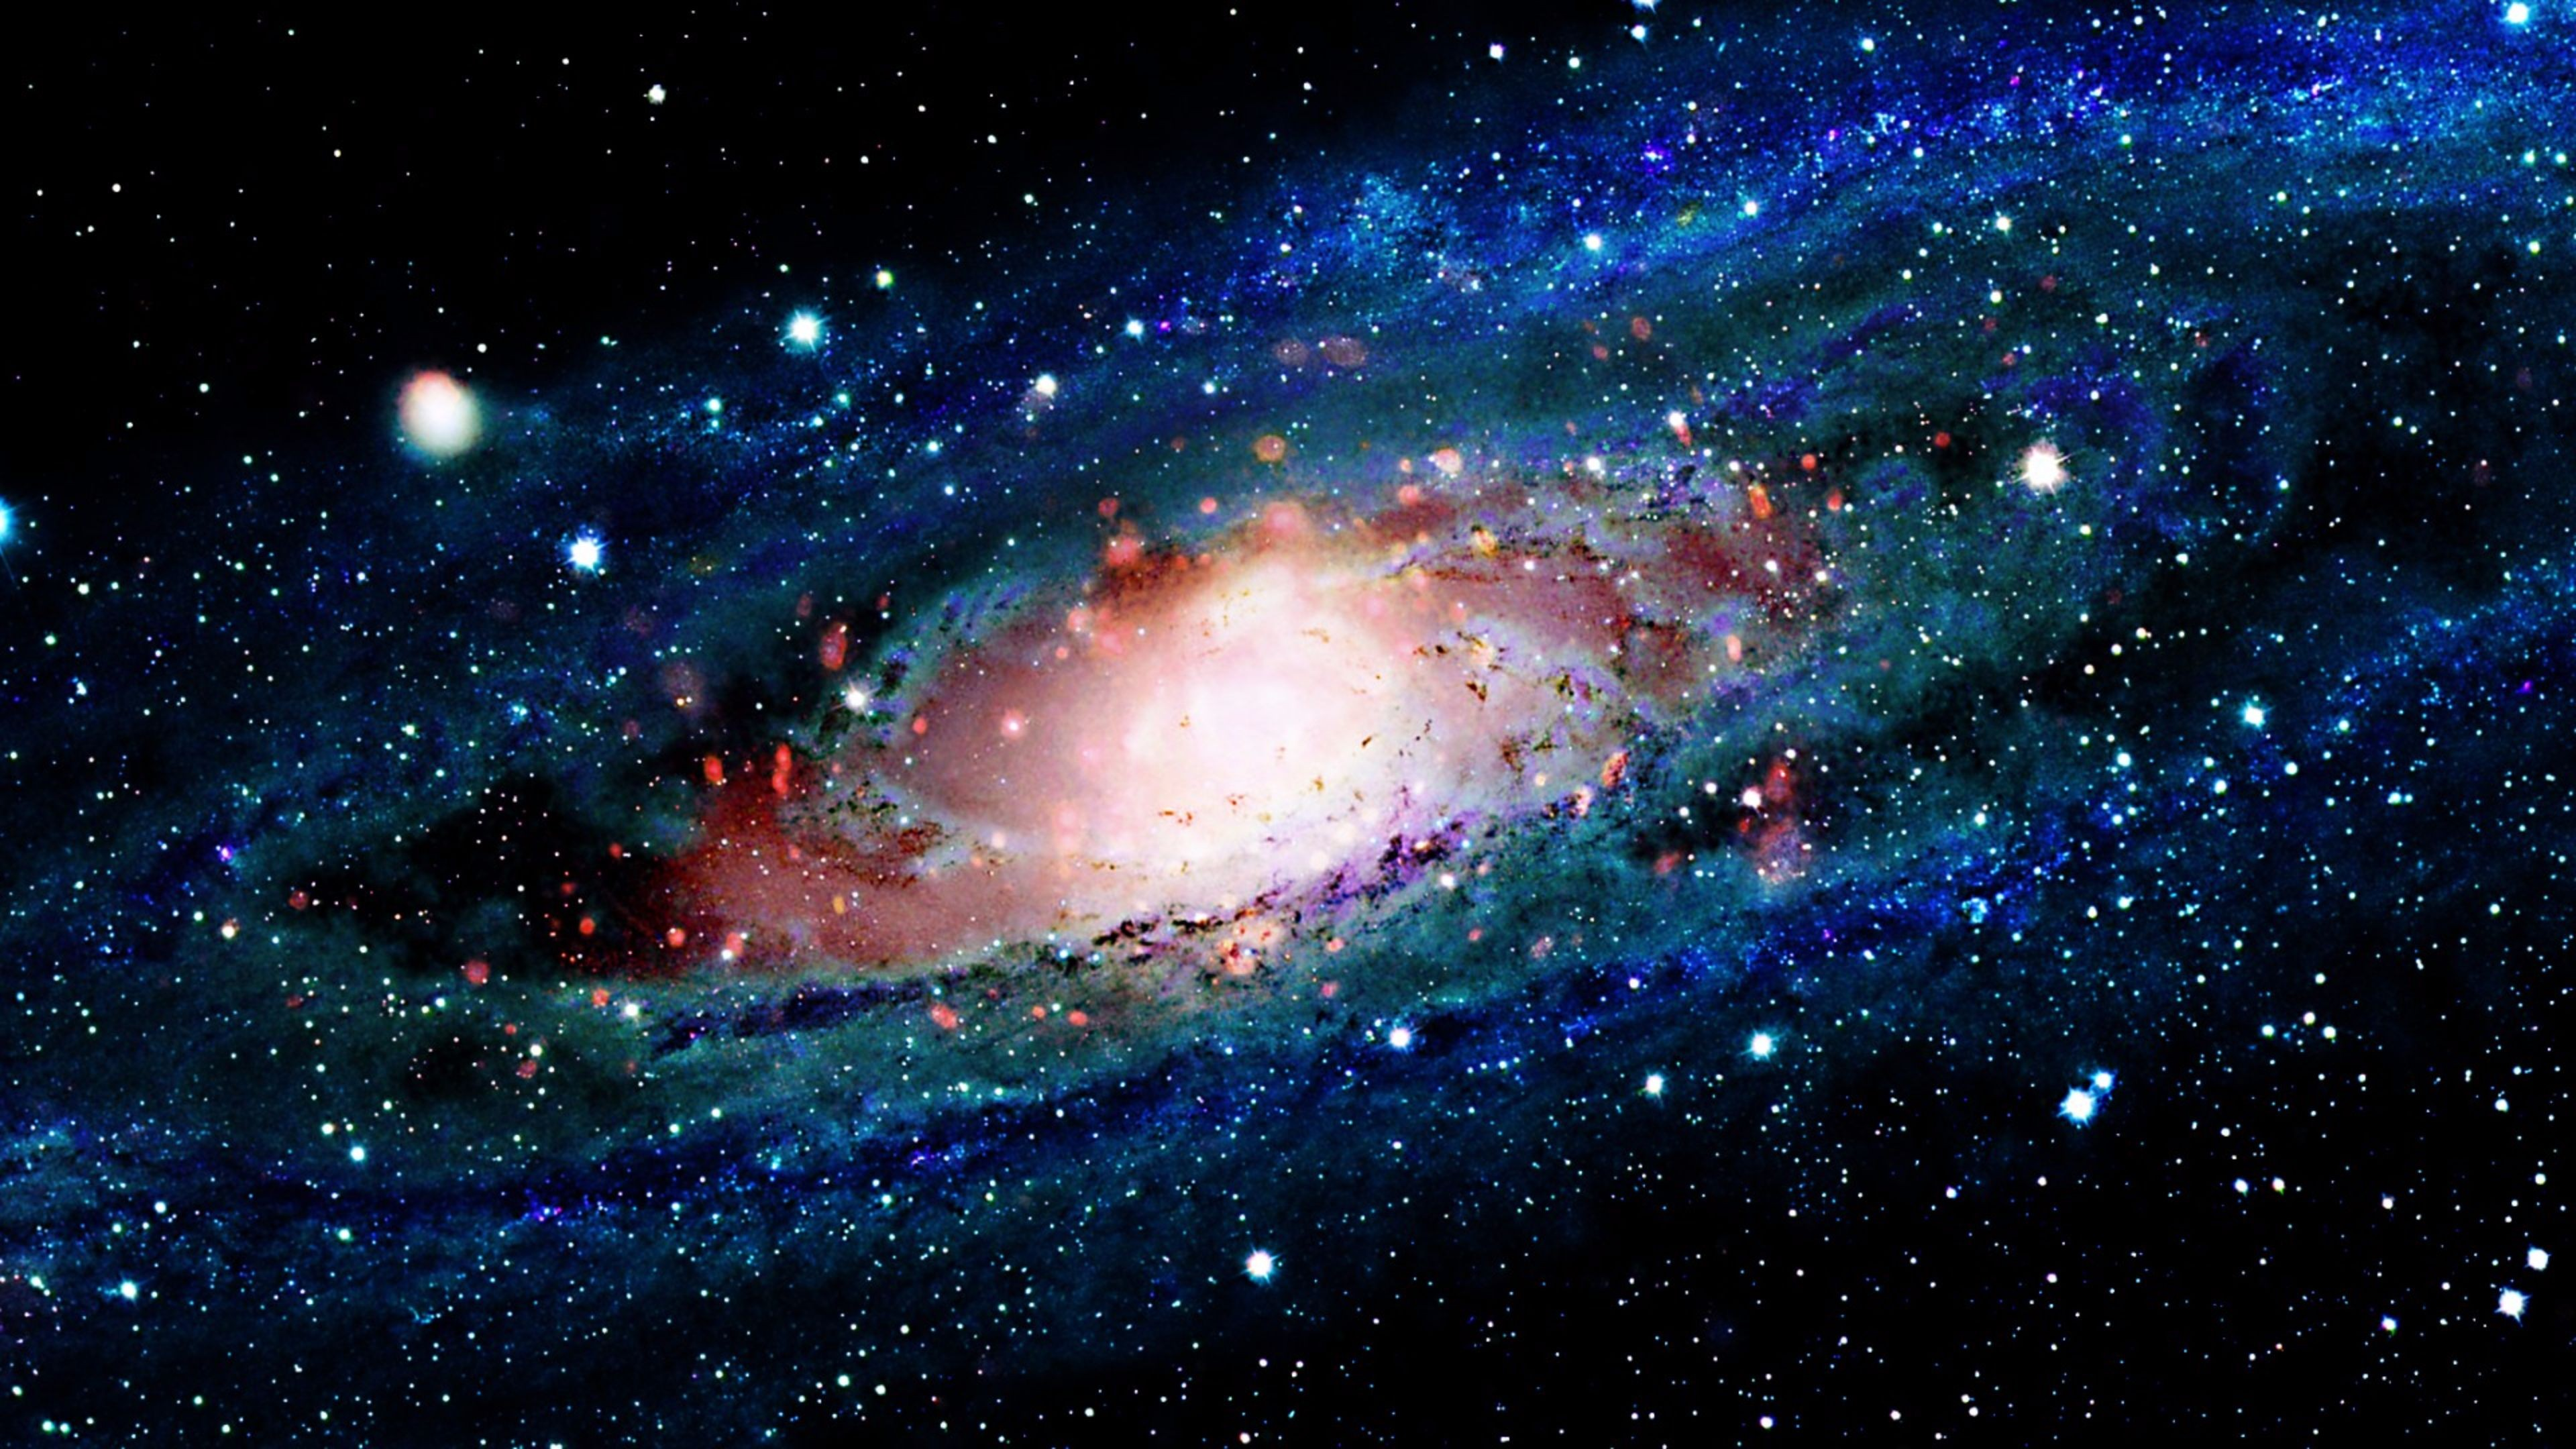 4K Space wallpaper            Download free stunning wallpapers for desktop     free